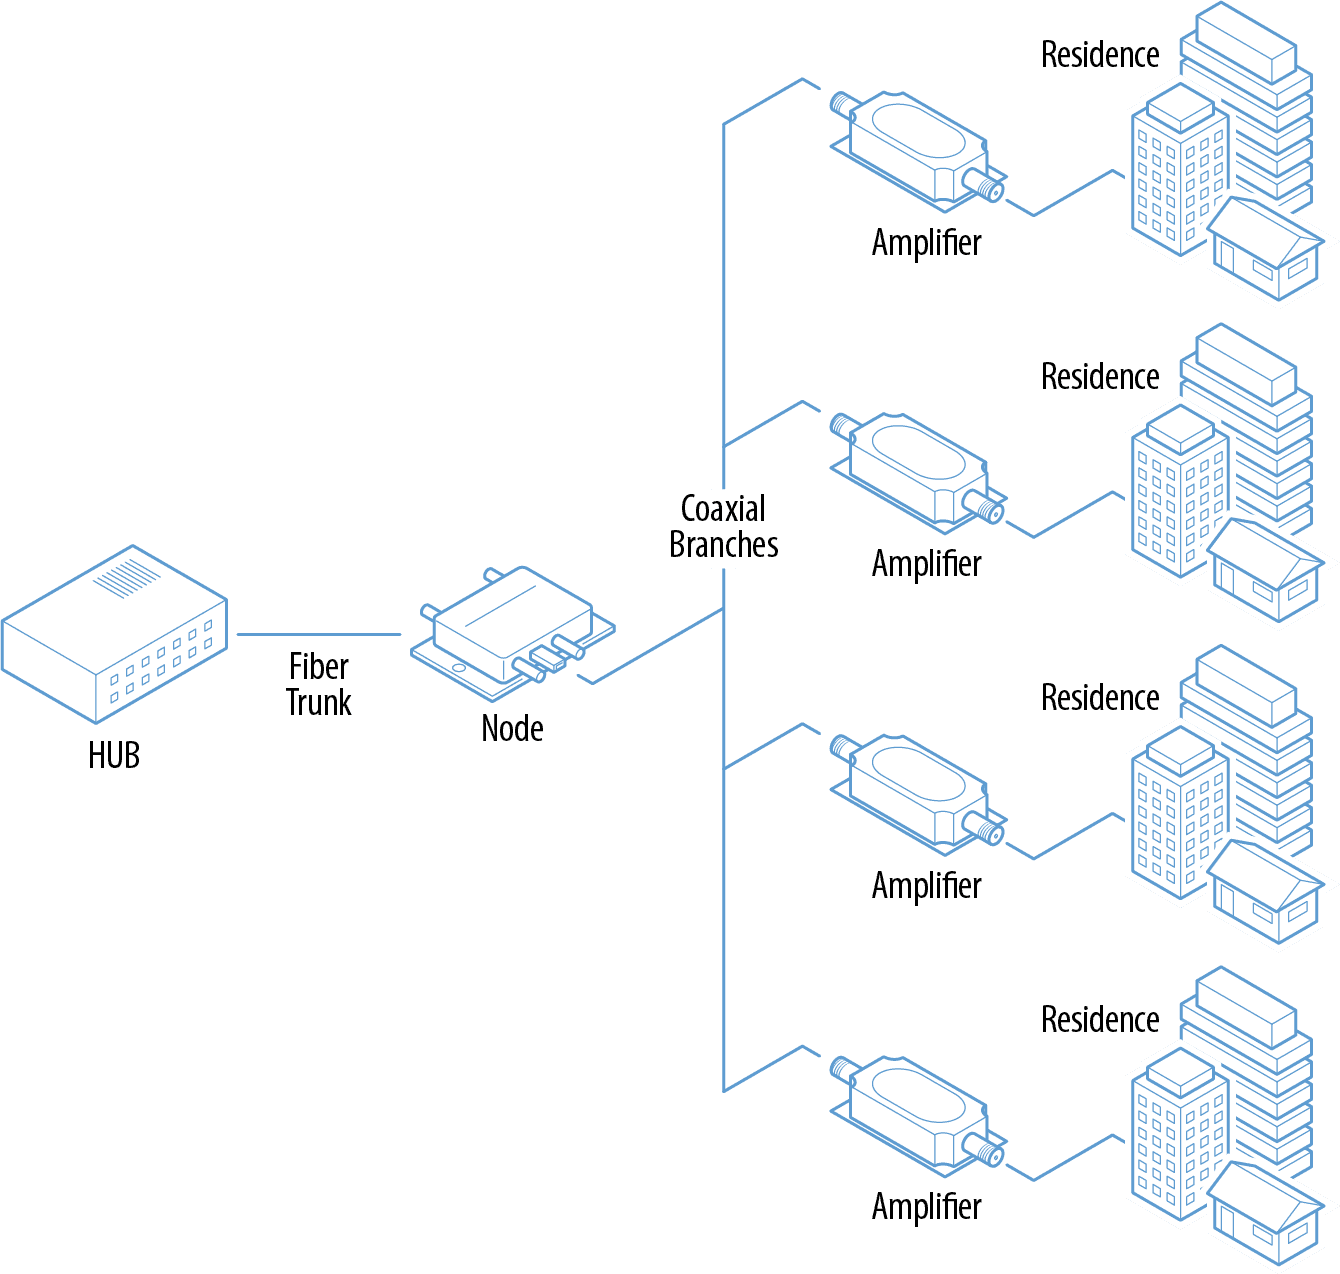 Components of a cable broadband network